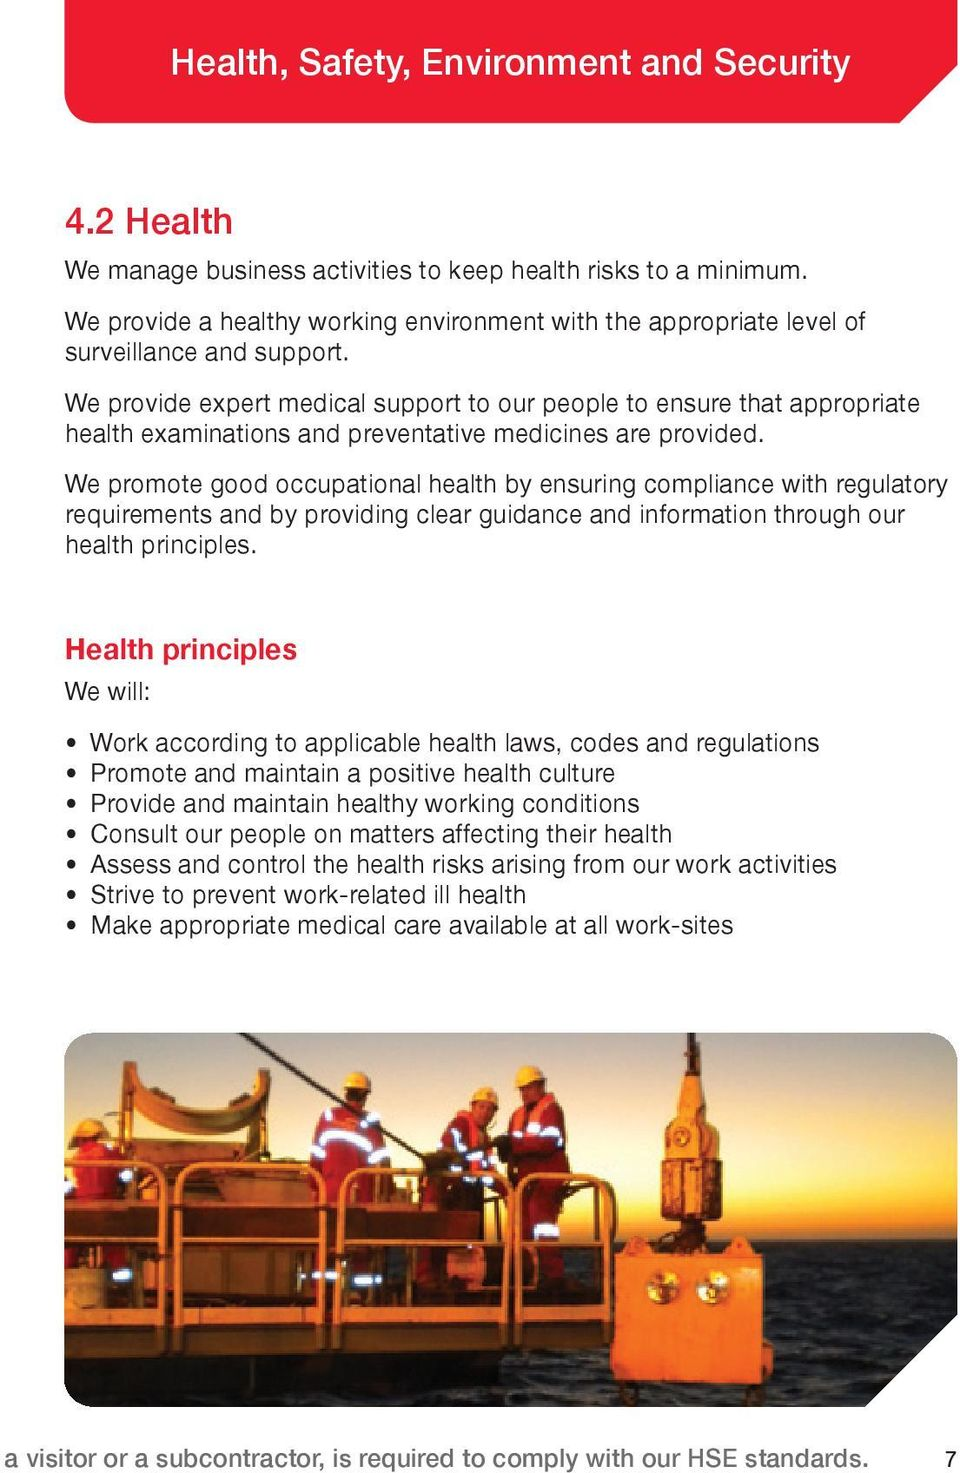 We promote good occupational health by ensuring compliance with regulatory requirements and by providing clear guidance and information through our health principles.